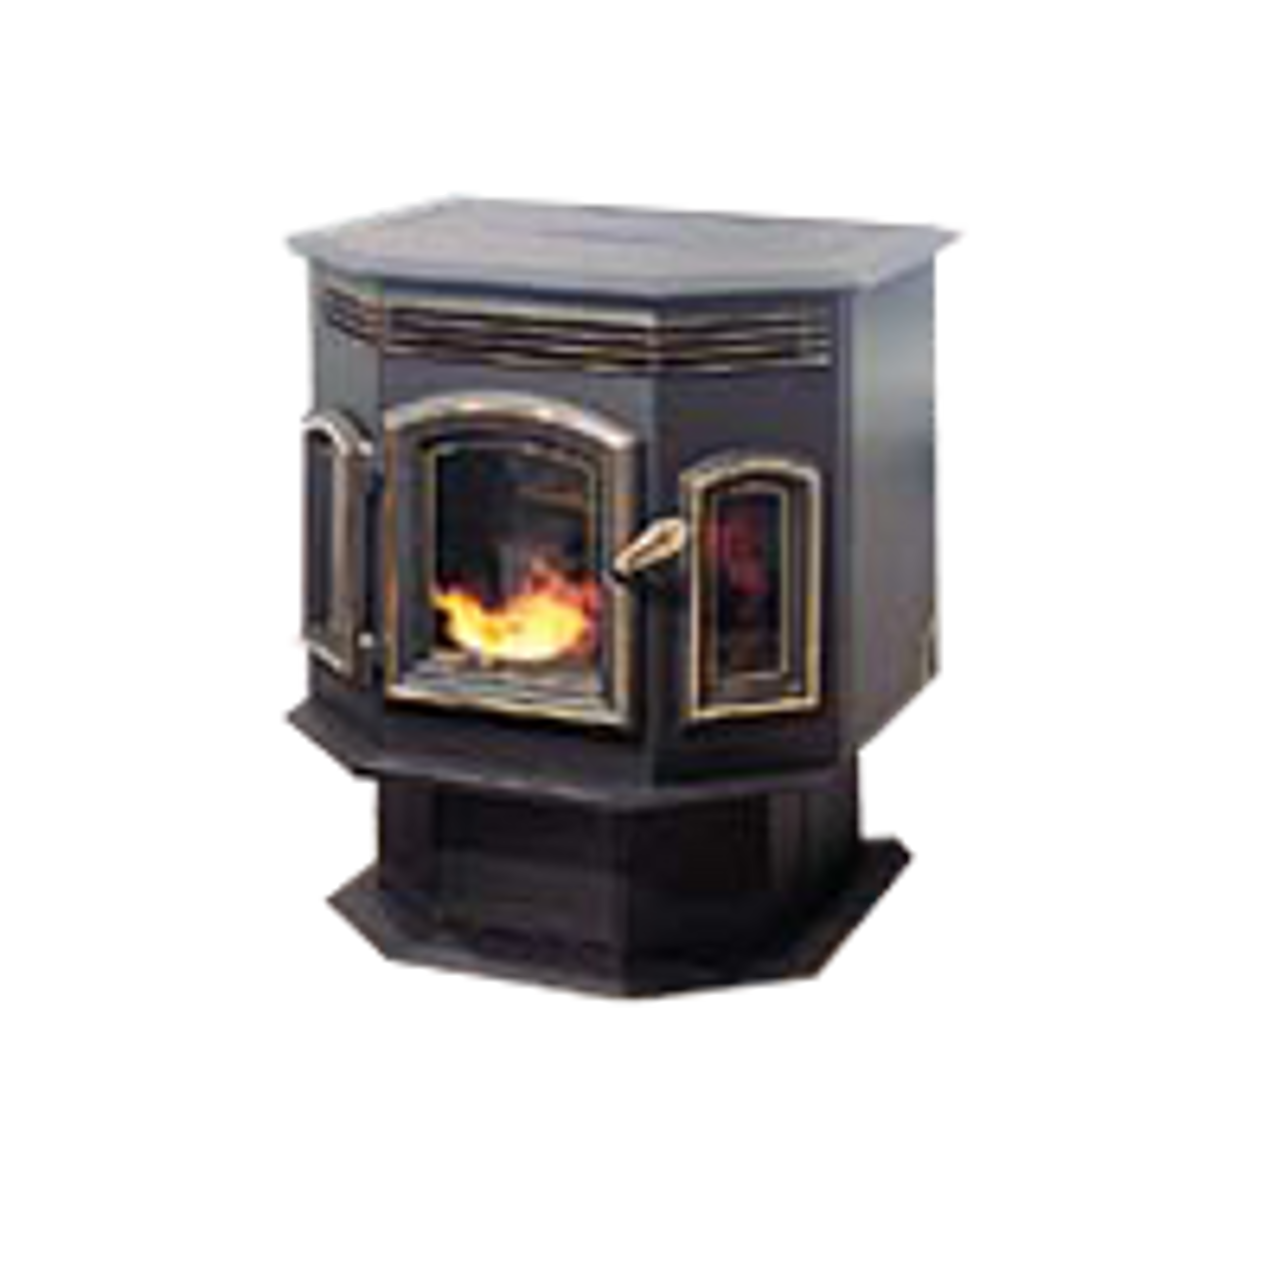 Quadra Fire 800 Pellet Stove Parts - Free shipping on orders ... on